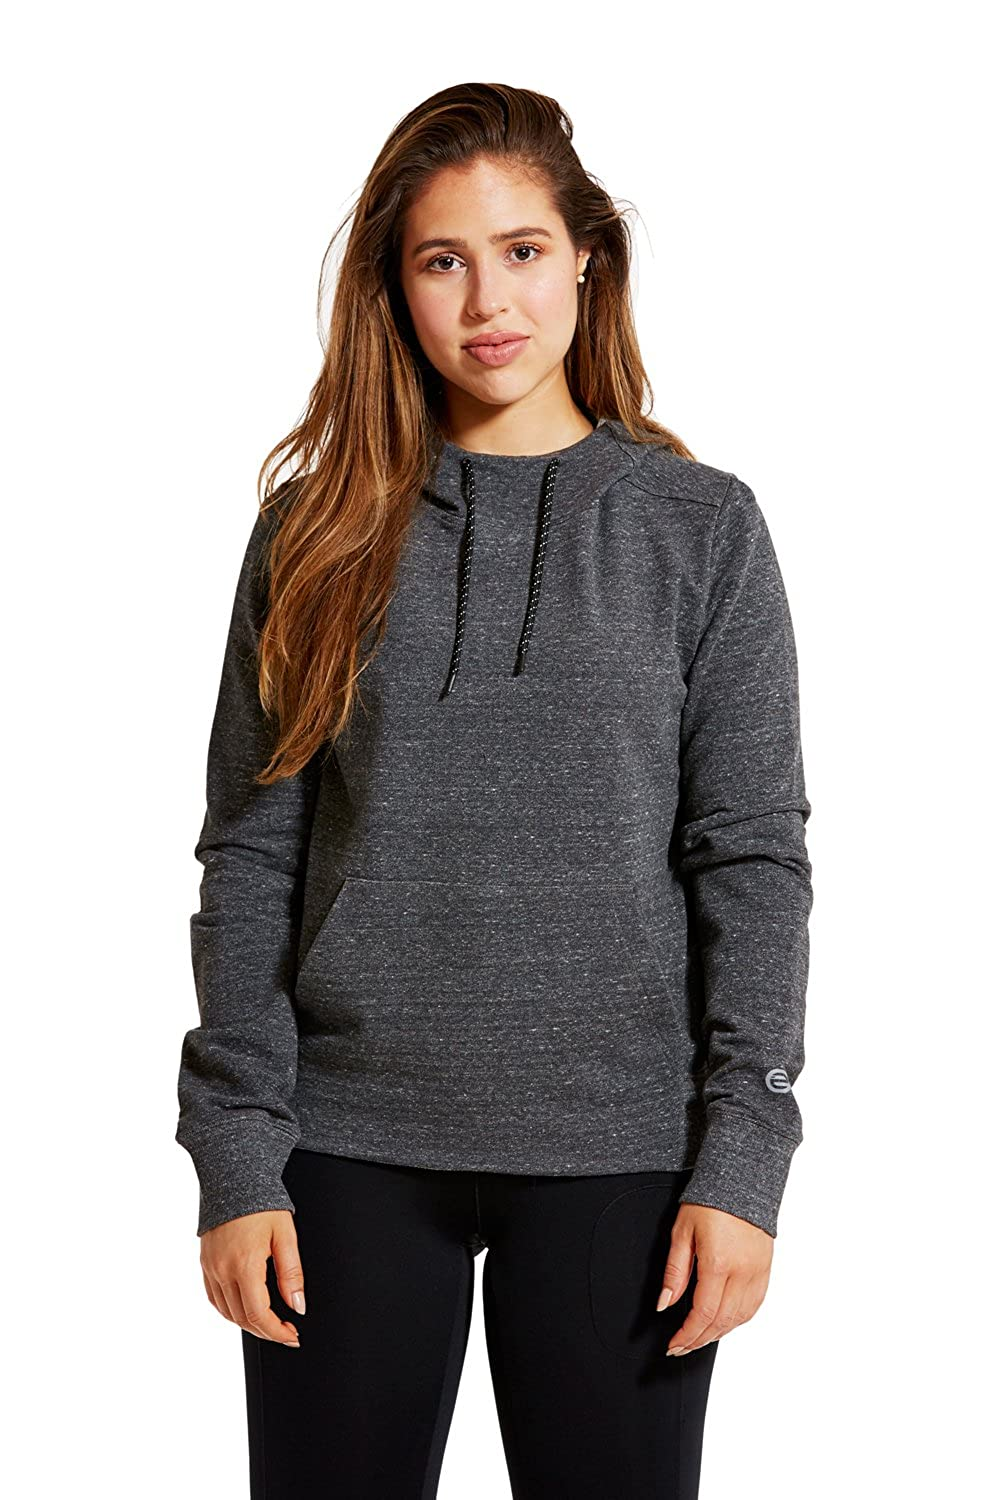 Etonic FLX Pullover Hoodies for Women